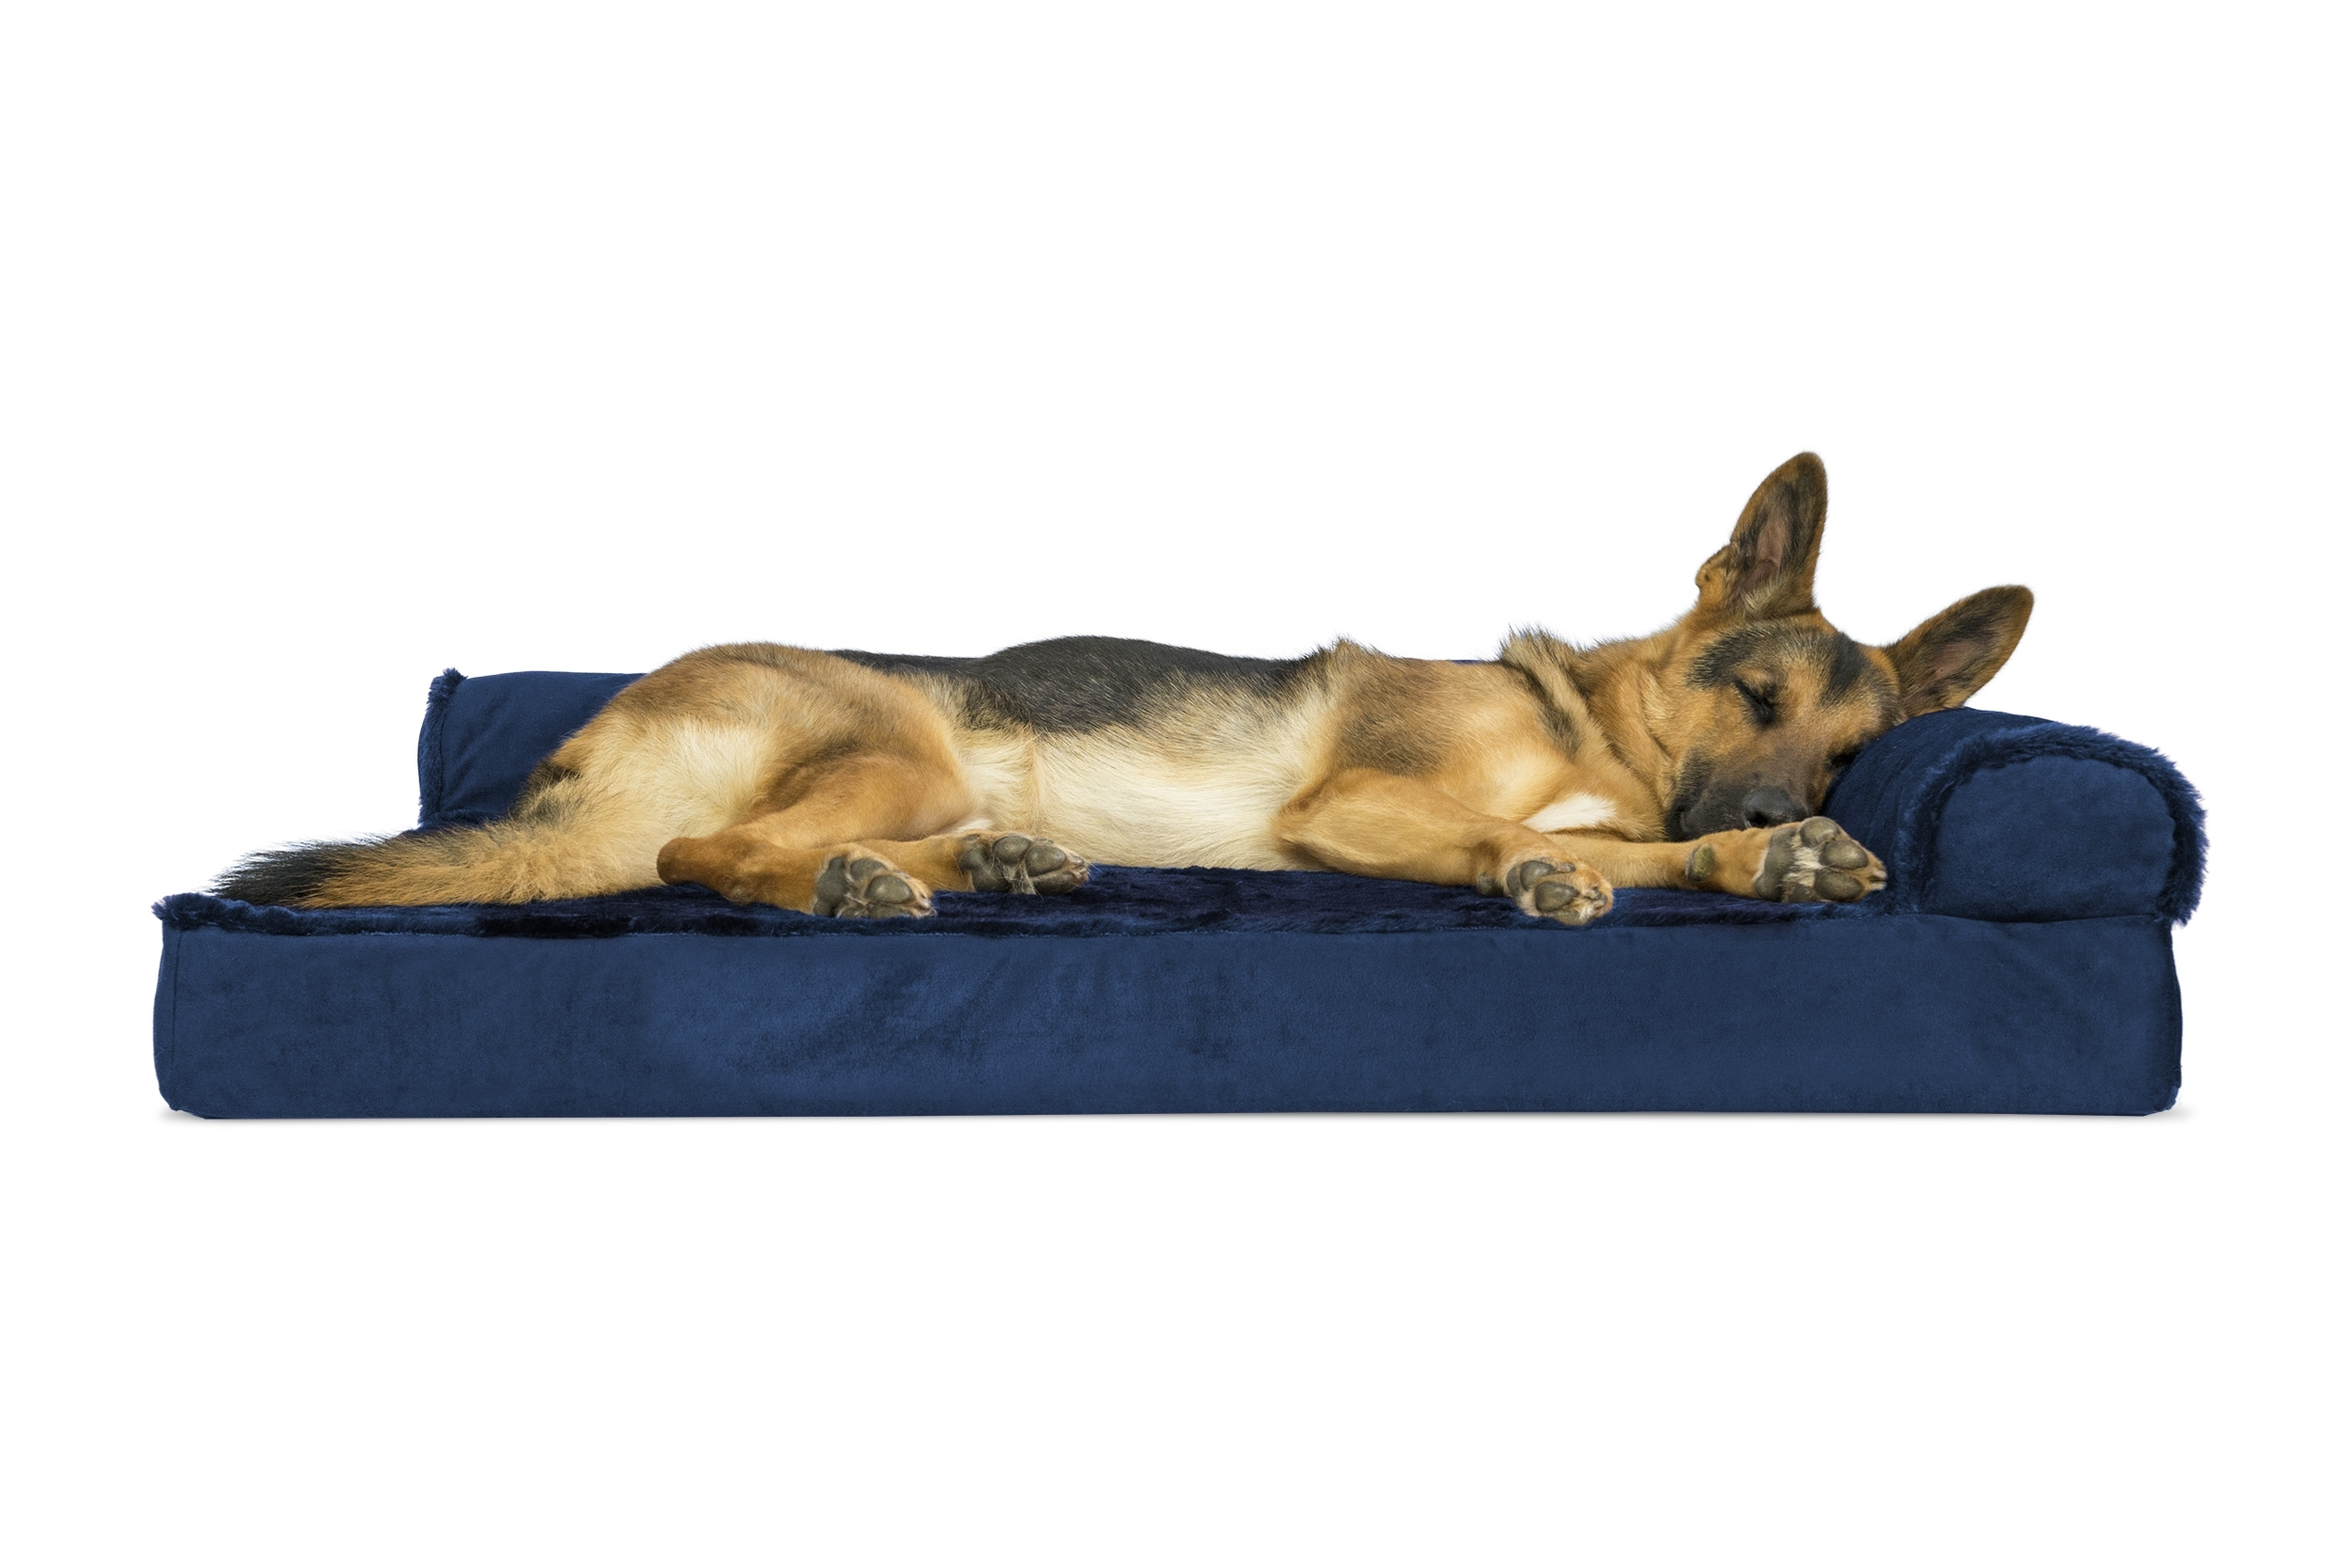 Latest Plush & Velvet Deluxe Chaise Lounge Orthopedic Sofa Style Pet Bed Pertaining To Dog Chaise Lounges (View 5 of 15)